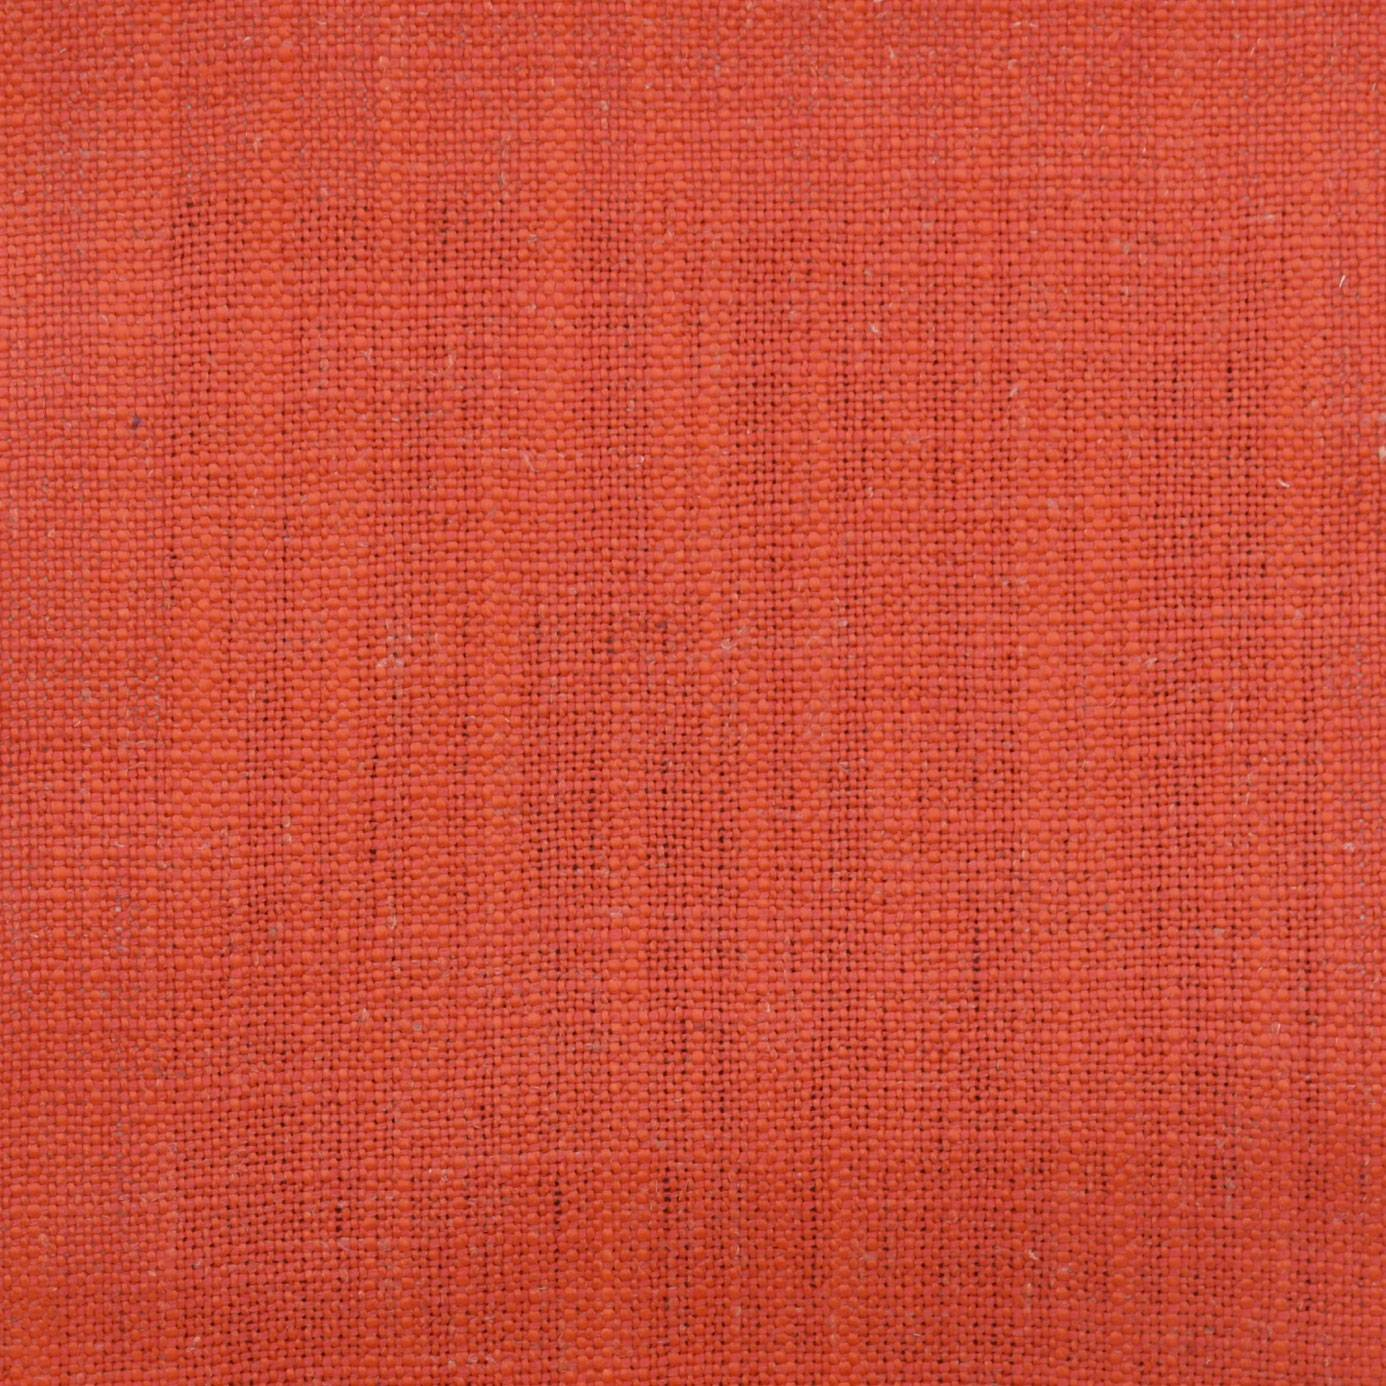 Curtains In Tenere Fabric Red Orange 31172424 Camengo Tenere Fabrics Collection